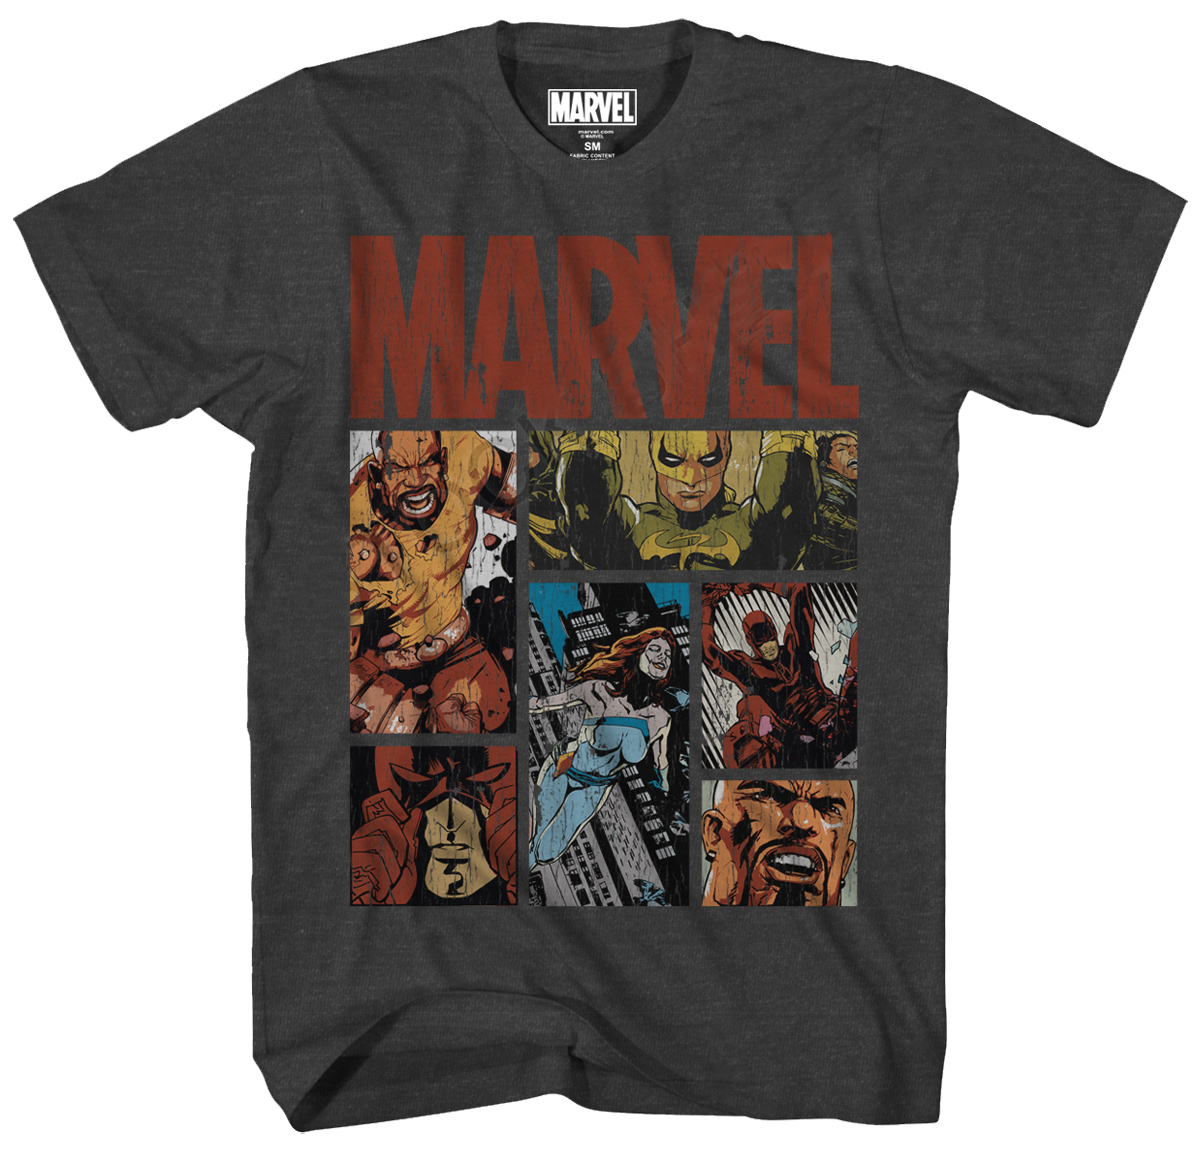 MARVEL HOOD KNIGHTS CHARCOAL HEATHER T/S LG